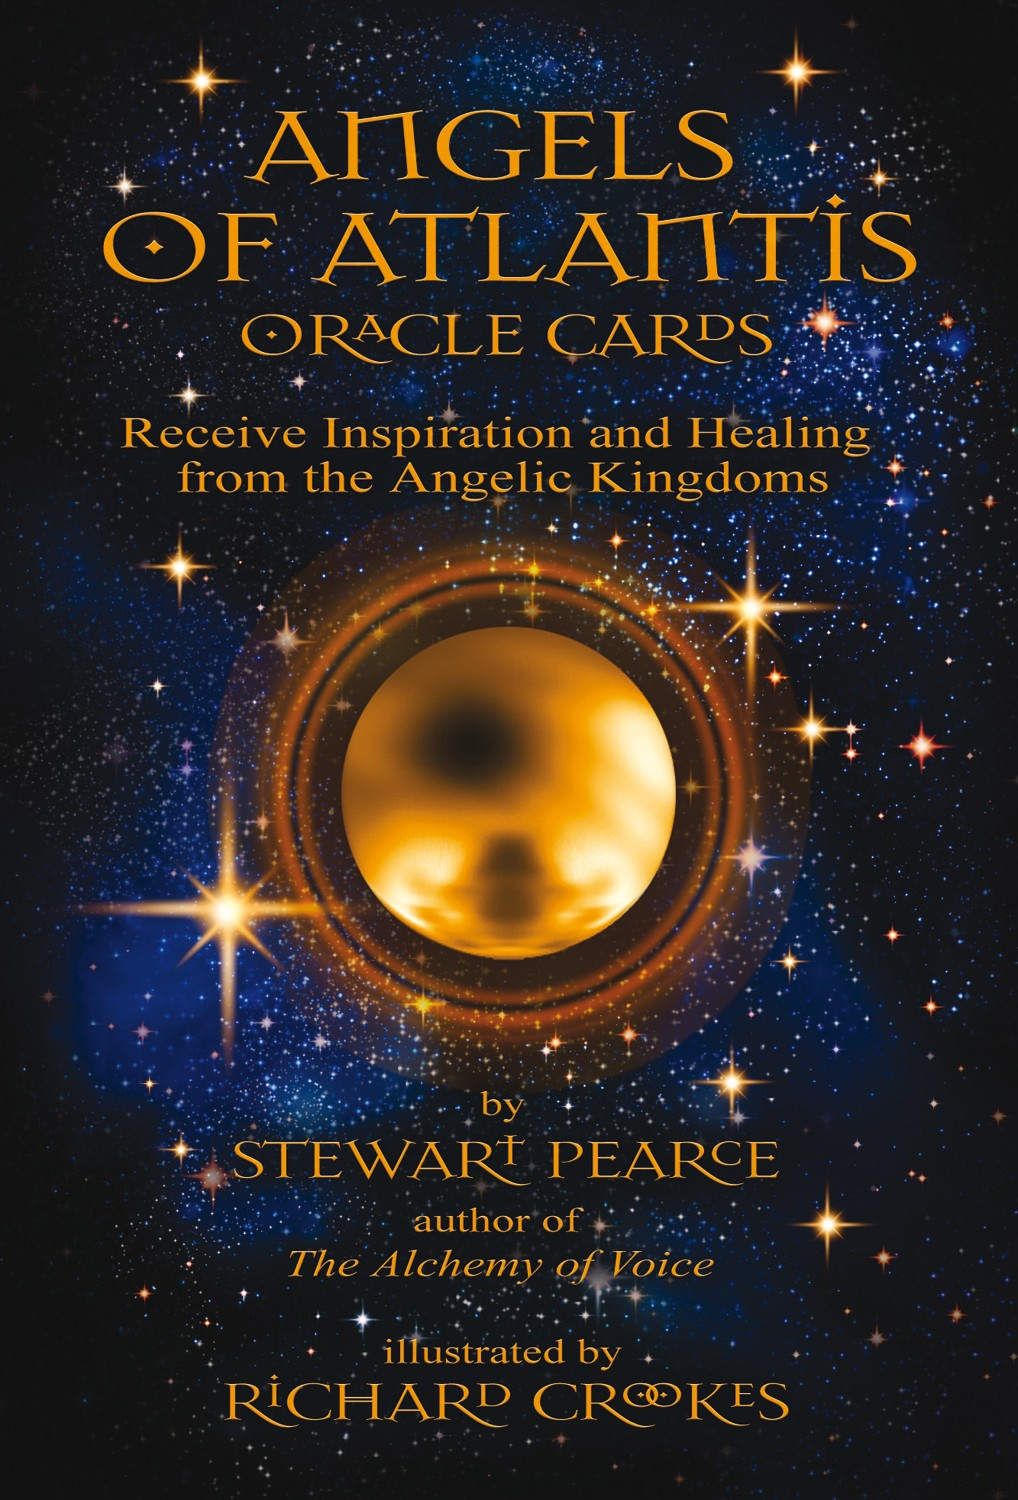 ANGELS OF ATLANTIS ORACLE CARDS by Stewart Pearce - DIANA THE VOICE OF CHANGE